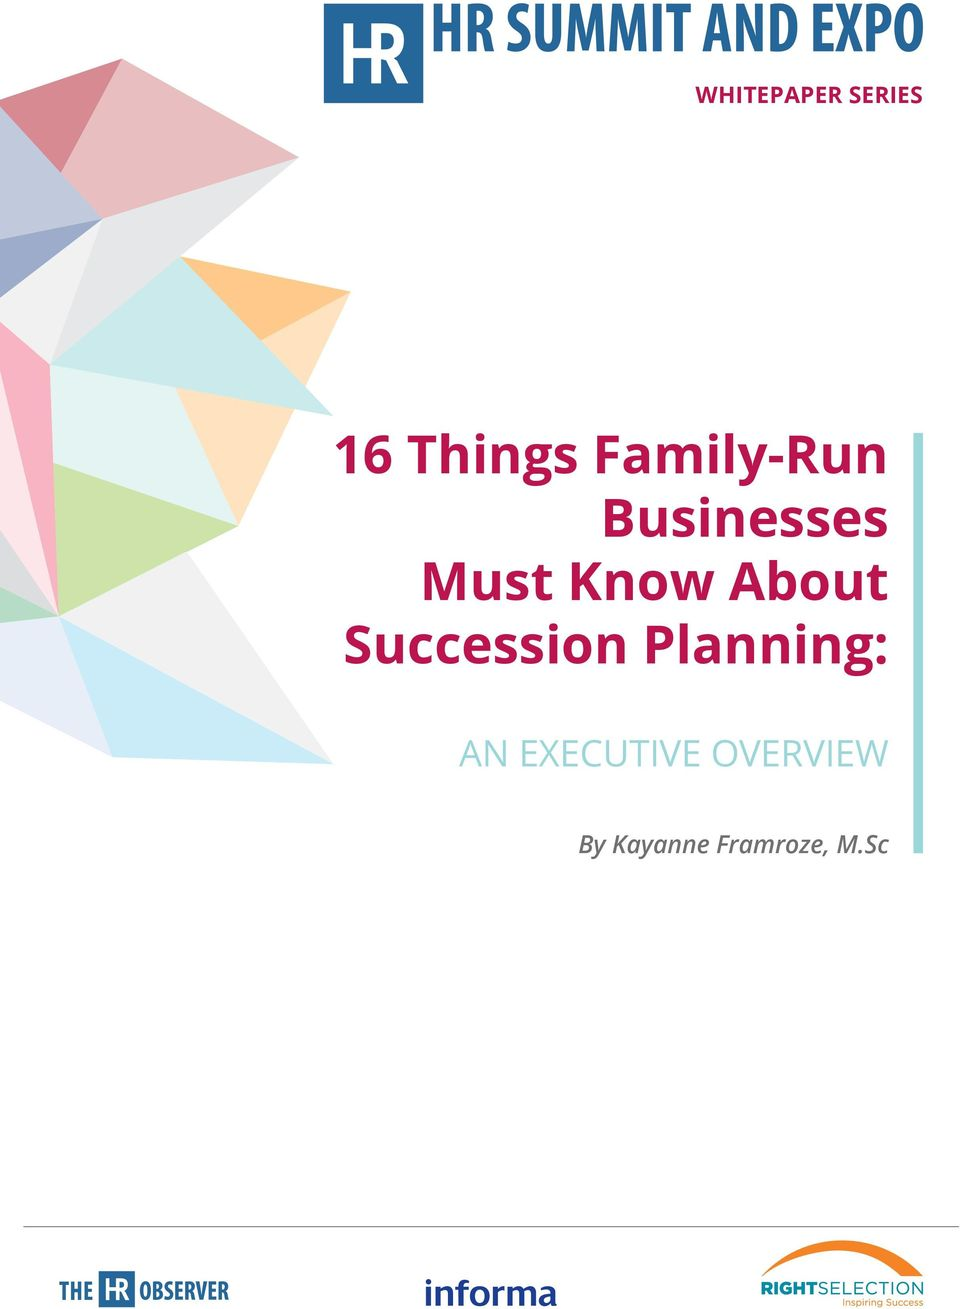 About Succession Planning: AN